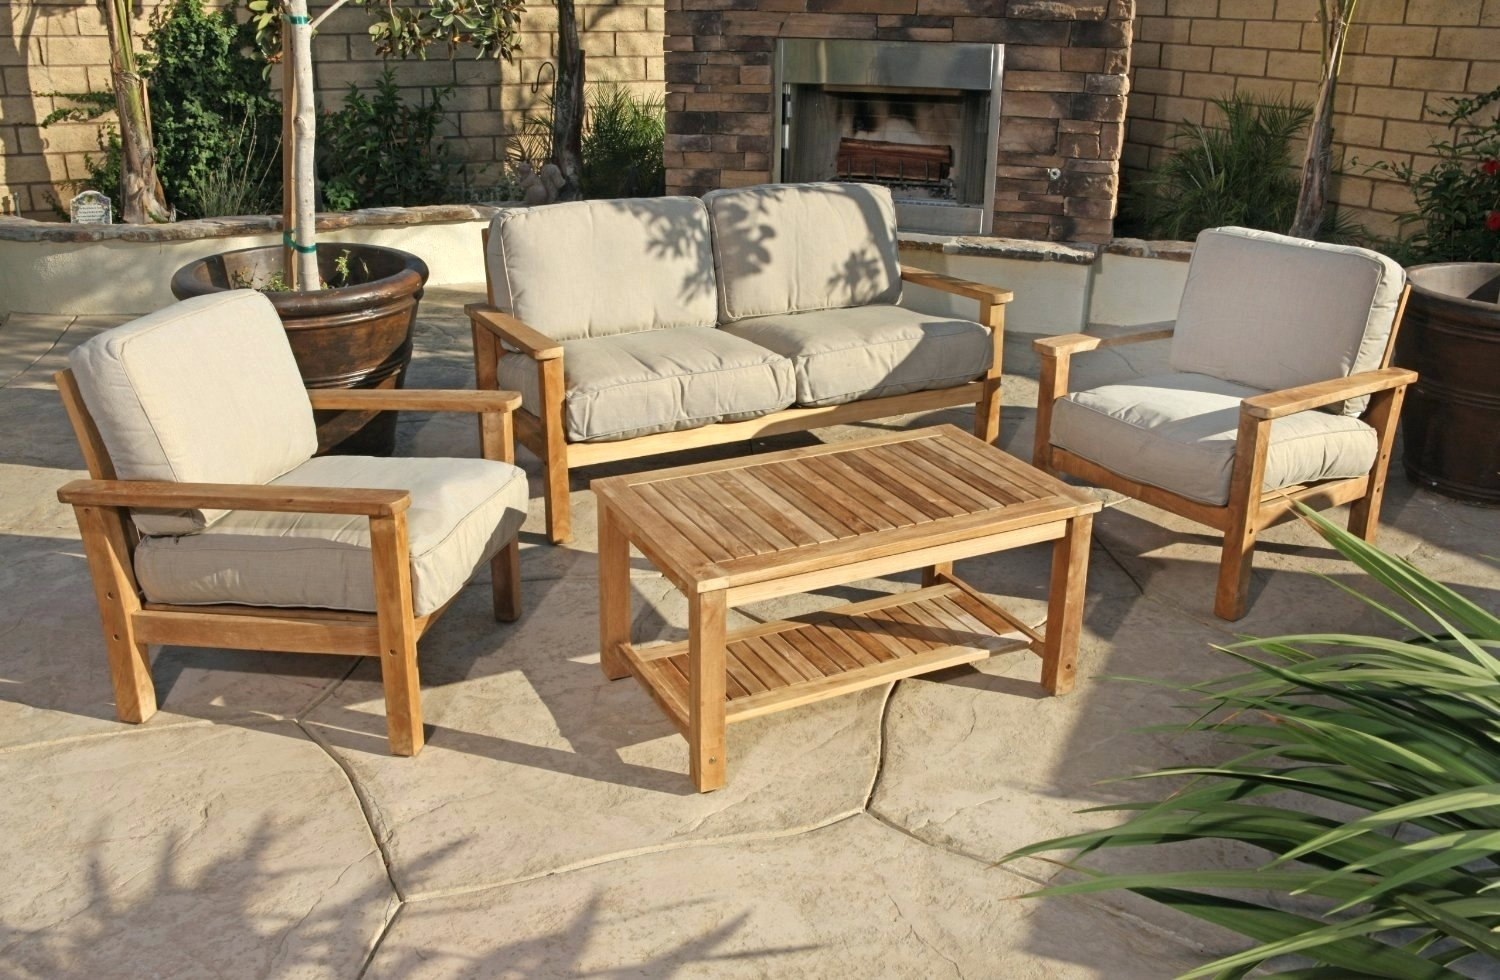 the fantastic real canadian tire sectional patio furniture ideas teak table outdoor toronto care vancouver eak wood set and modern wicker sofa sets how clean full size sectionals